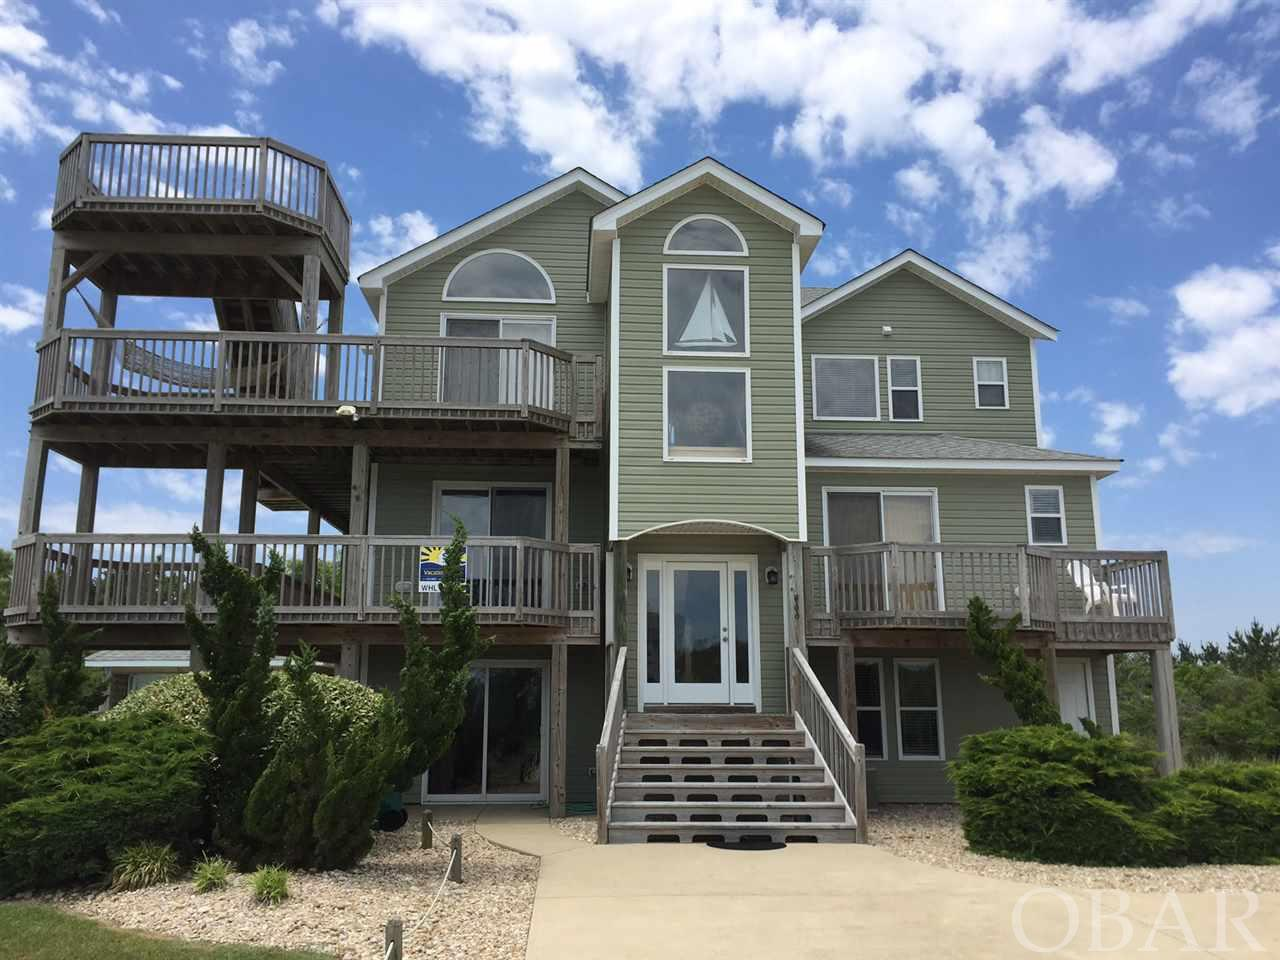 966 Whalehead Drive,Corolla,NC 27927,8 Bedrooms Bedrooms,8 BathroomsBathrooms,Residential,Whalehead Drive,96666